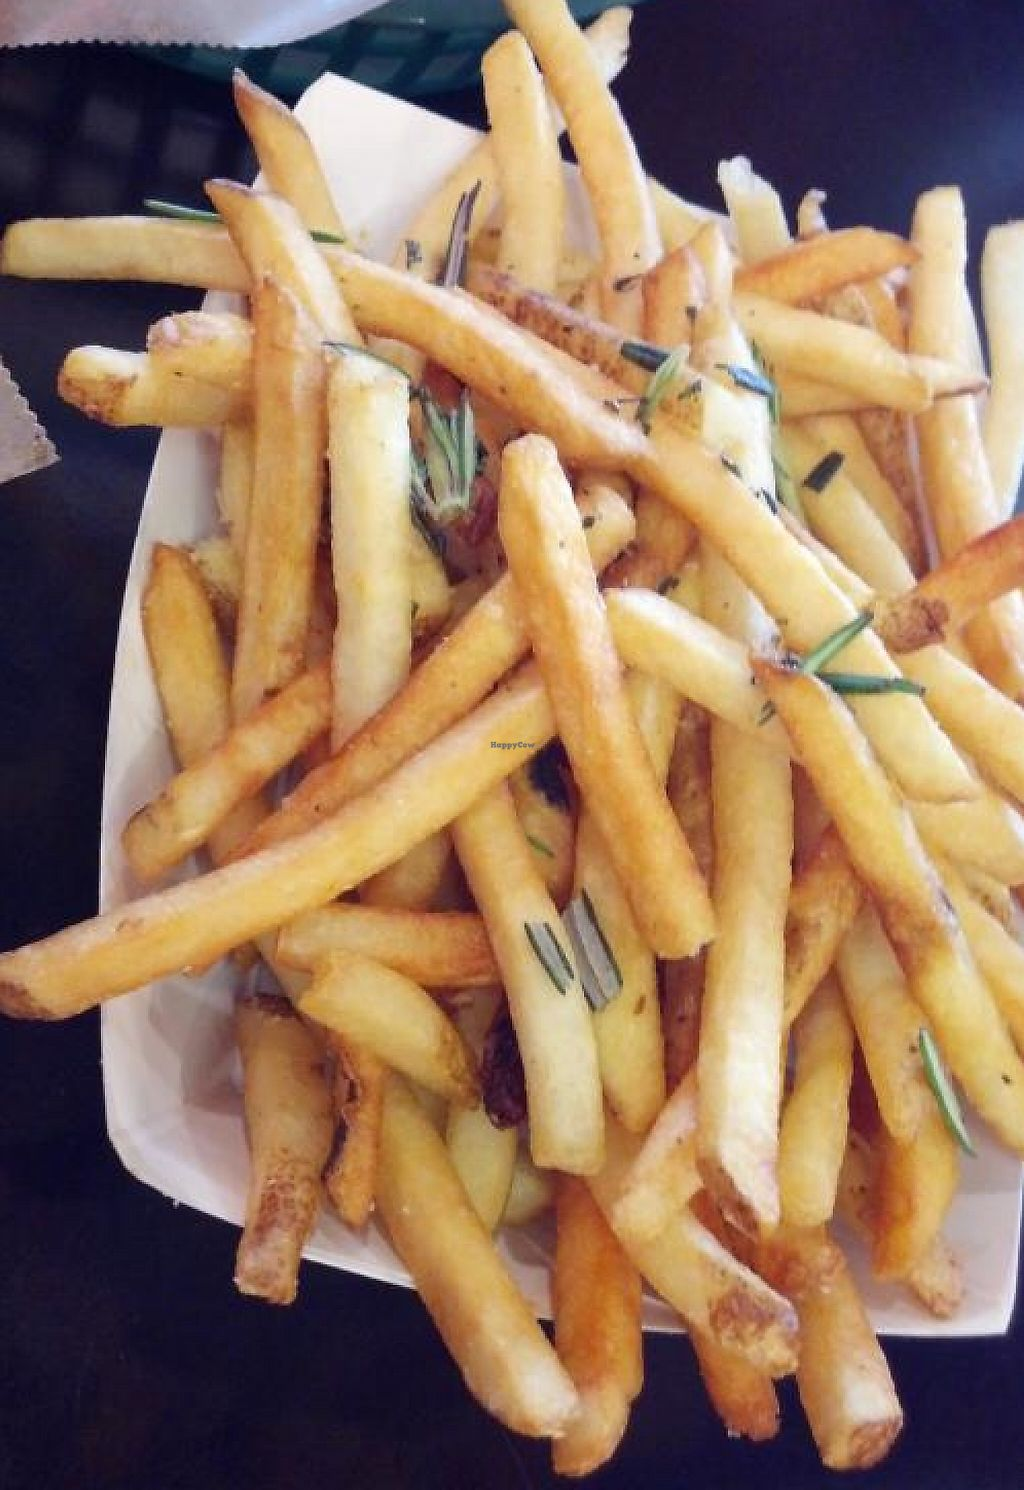 """Photo of Toasted  by <a href=""""/members/profile/Chucky"""">Chucky</a> <br/>Natural Cut Fries in Truffle Oil w/ Rosemary <br/> April 22, 2013  - <a href='/contact/abuse/image/37314/197444'>Report</a>"""